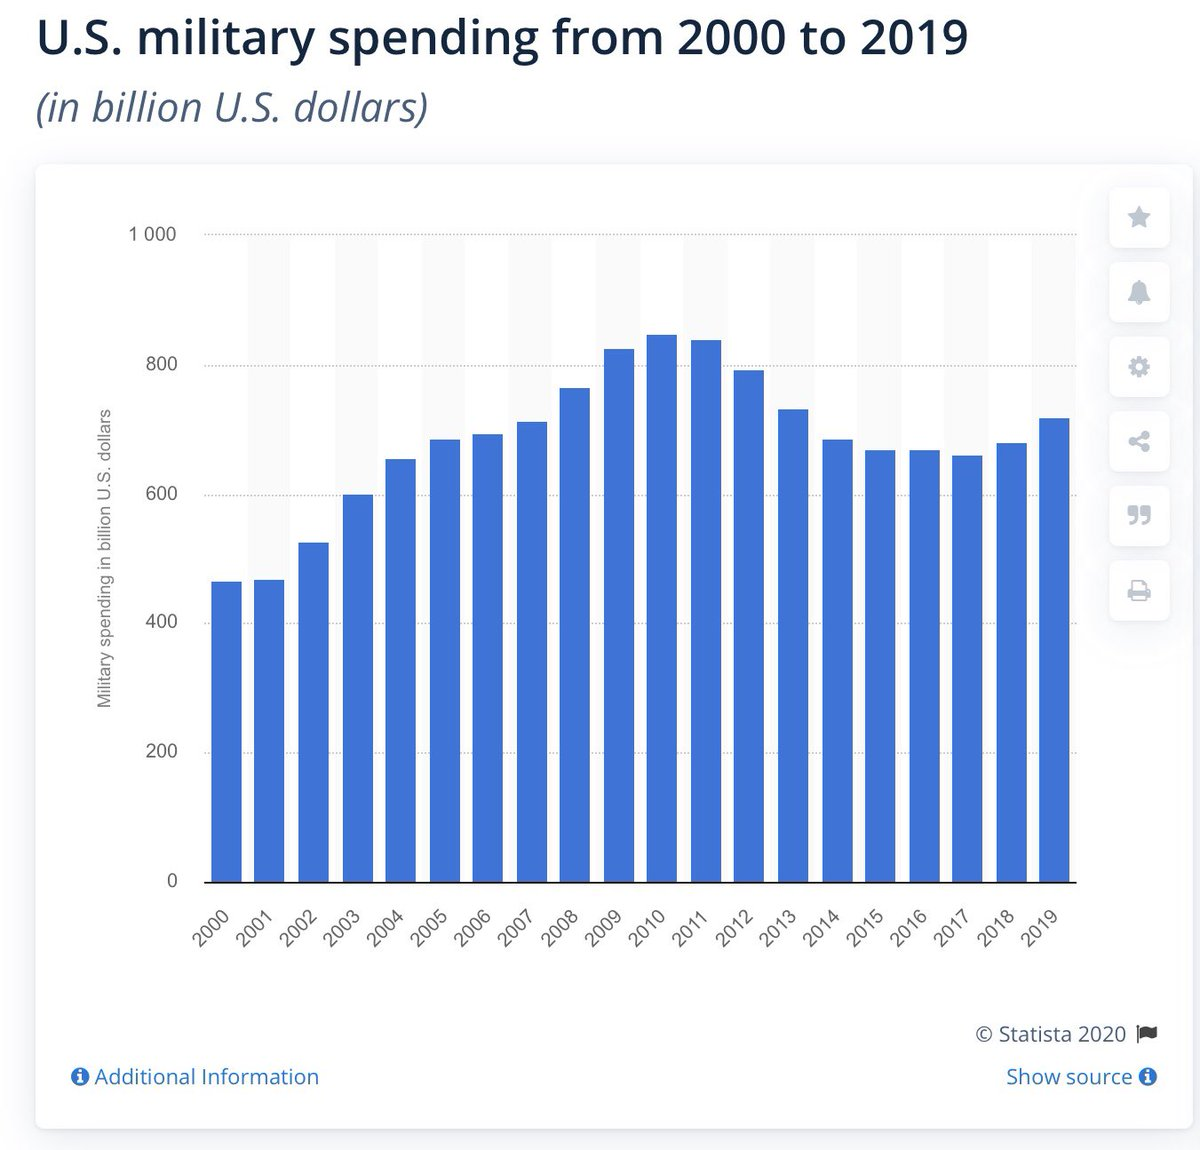 Trump has barely increased spending and has taken BILLIONS out of their budget for his vanity project. #FactsMatter <br>http://pic.twitter.com/JDEn6k3wUQ